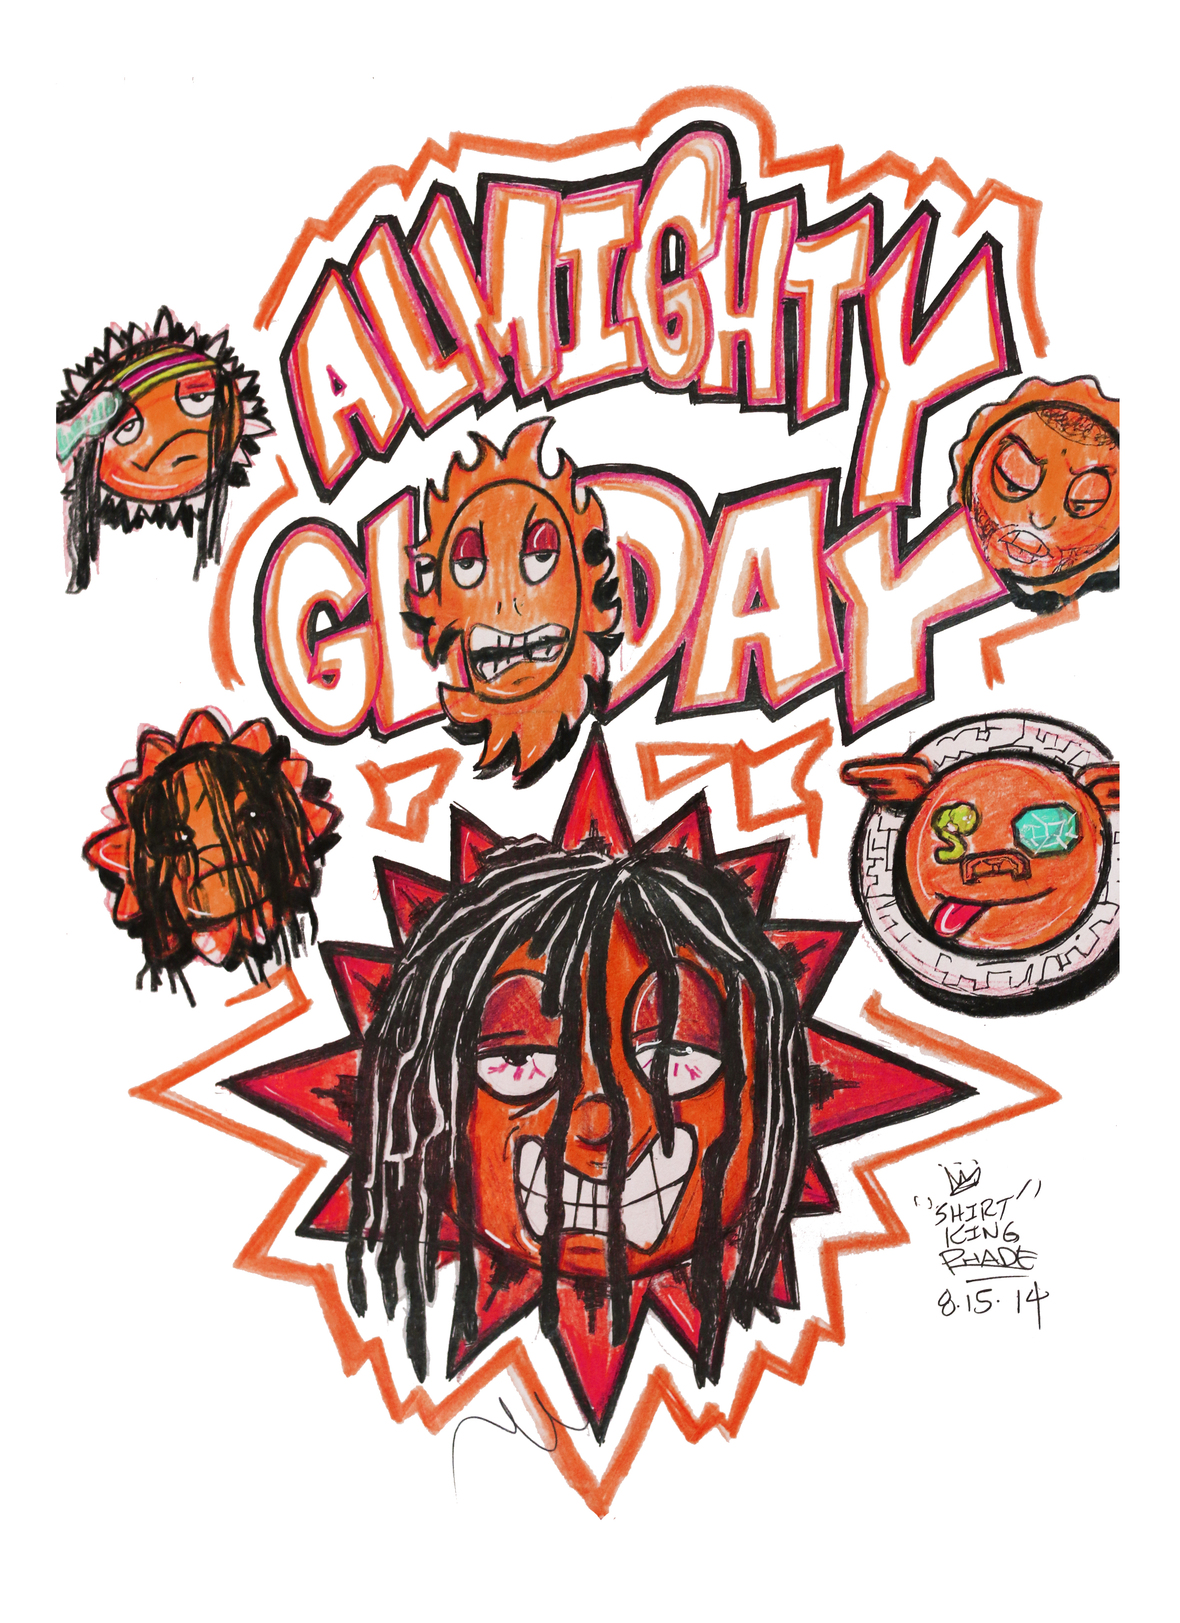 SHIRTKING PHADE for TI$A X CHIEF KEEF T-SHIRT – WHAT YOU ...